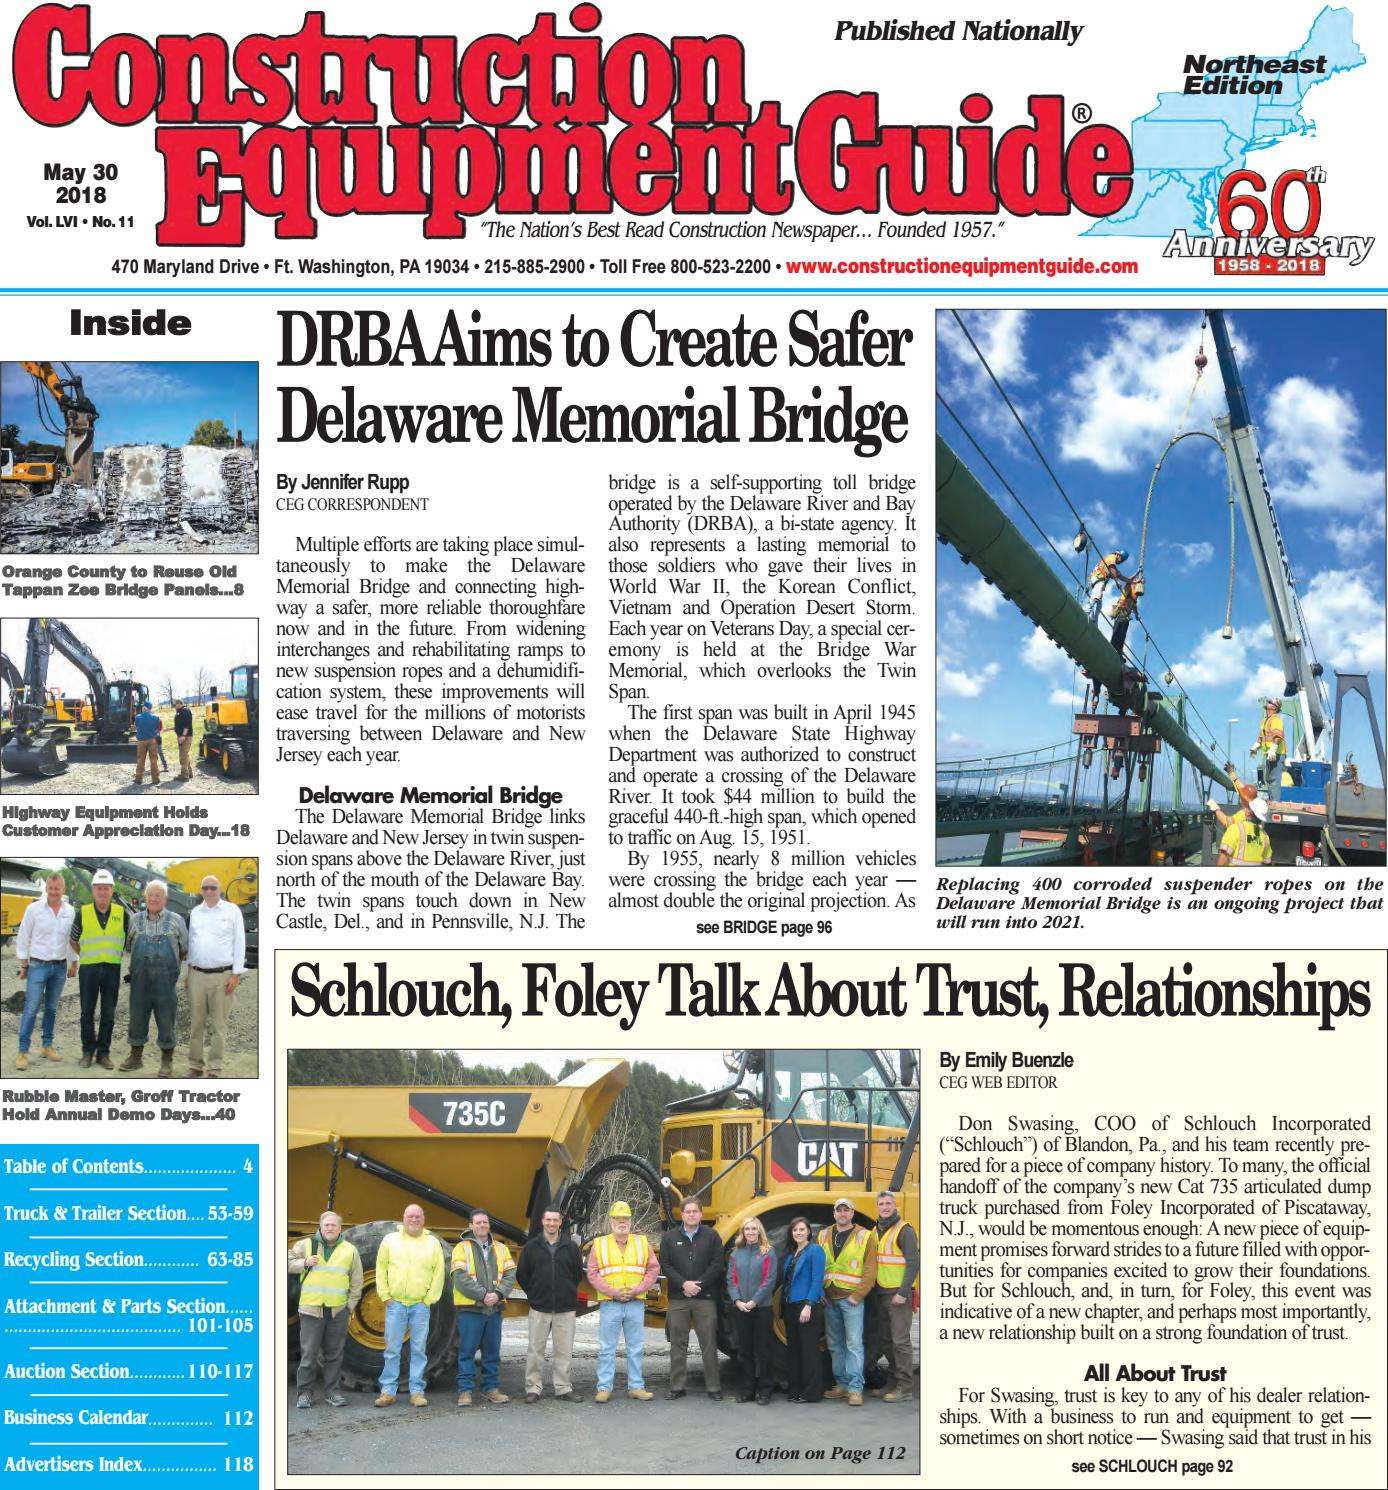 Northeast 11 May 30, 2018 by Construction Equipment Guide - issuu